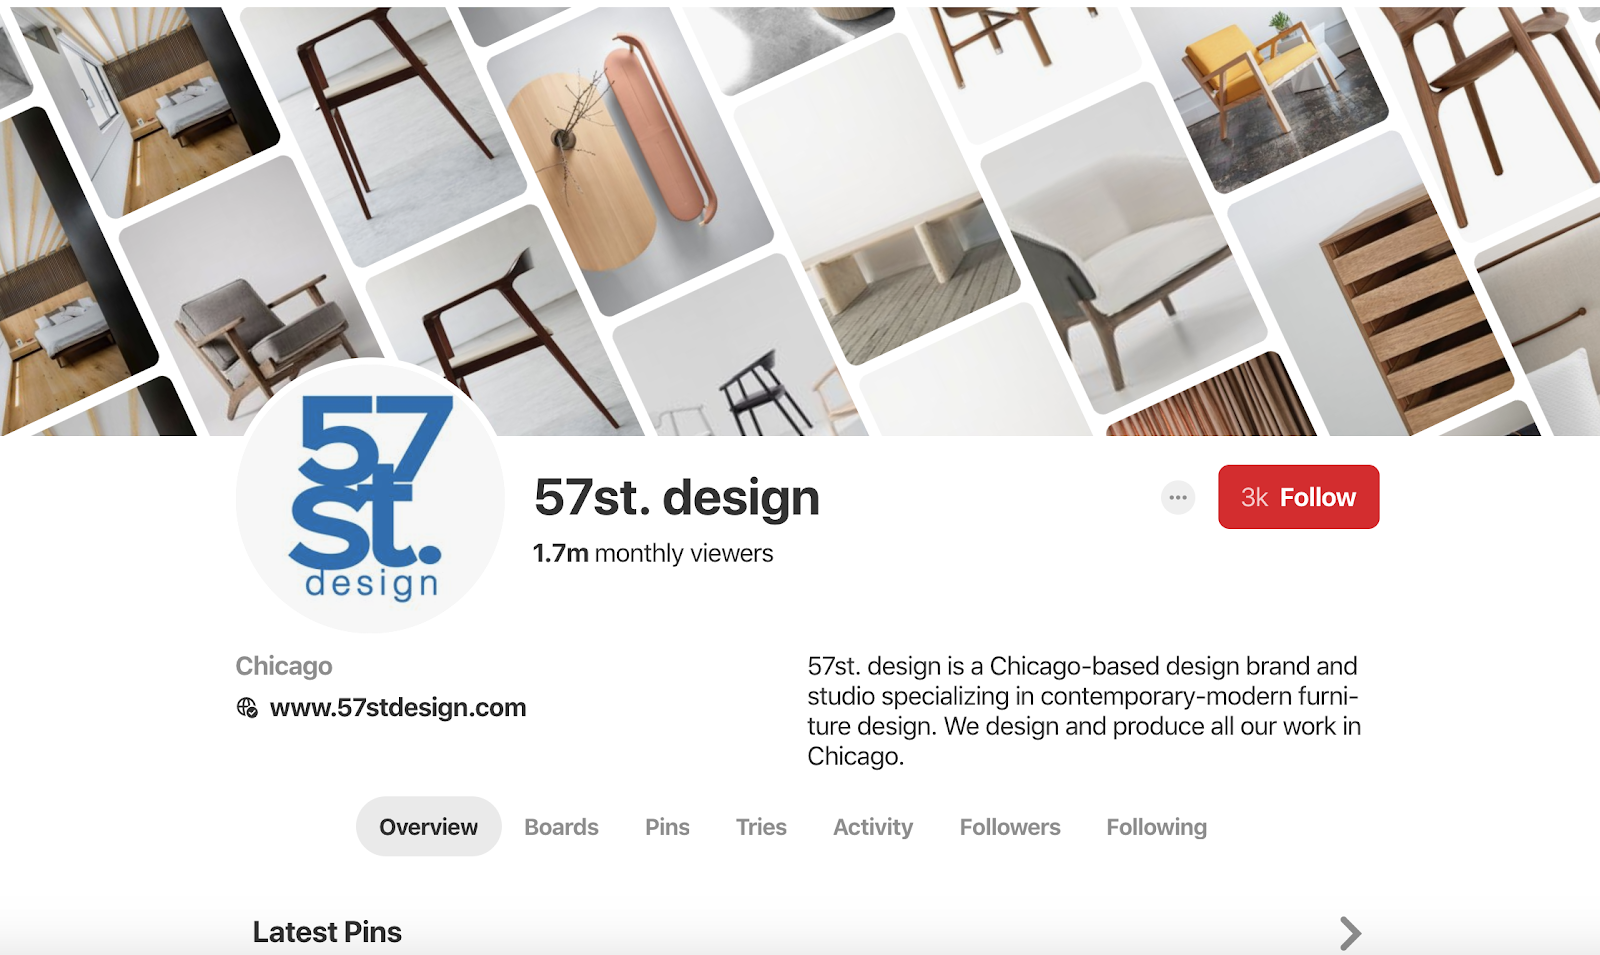 57st. design on Pinterest